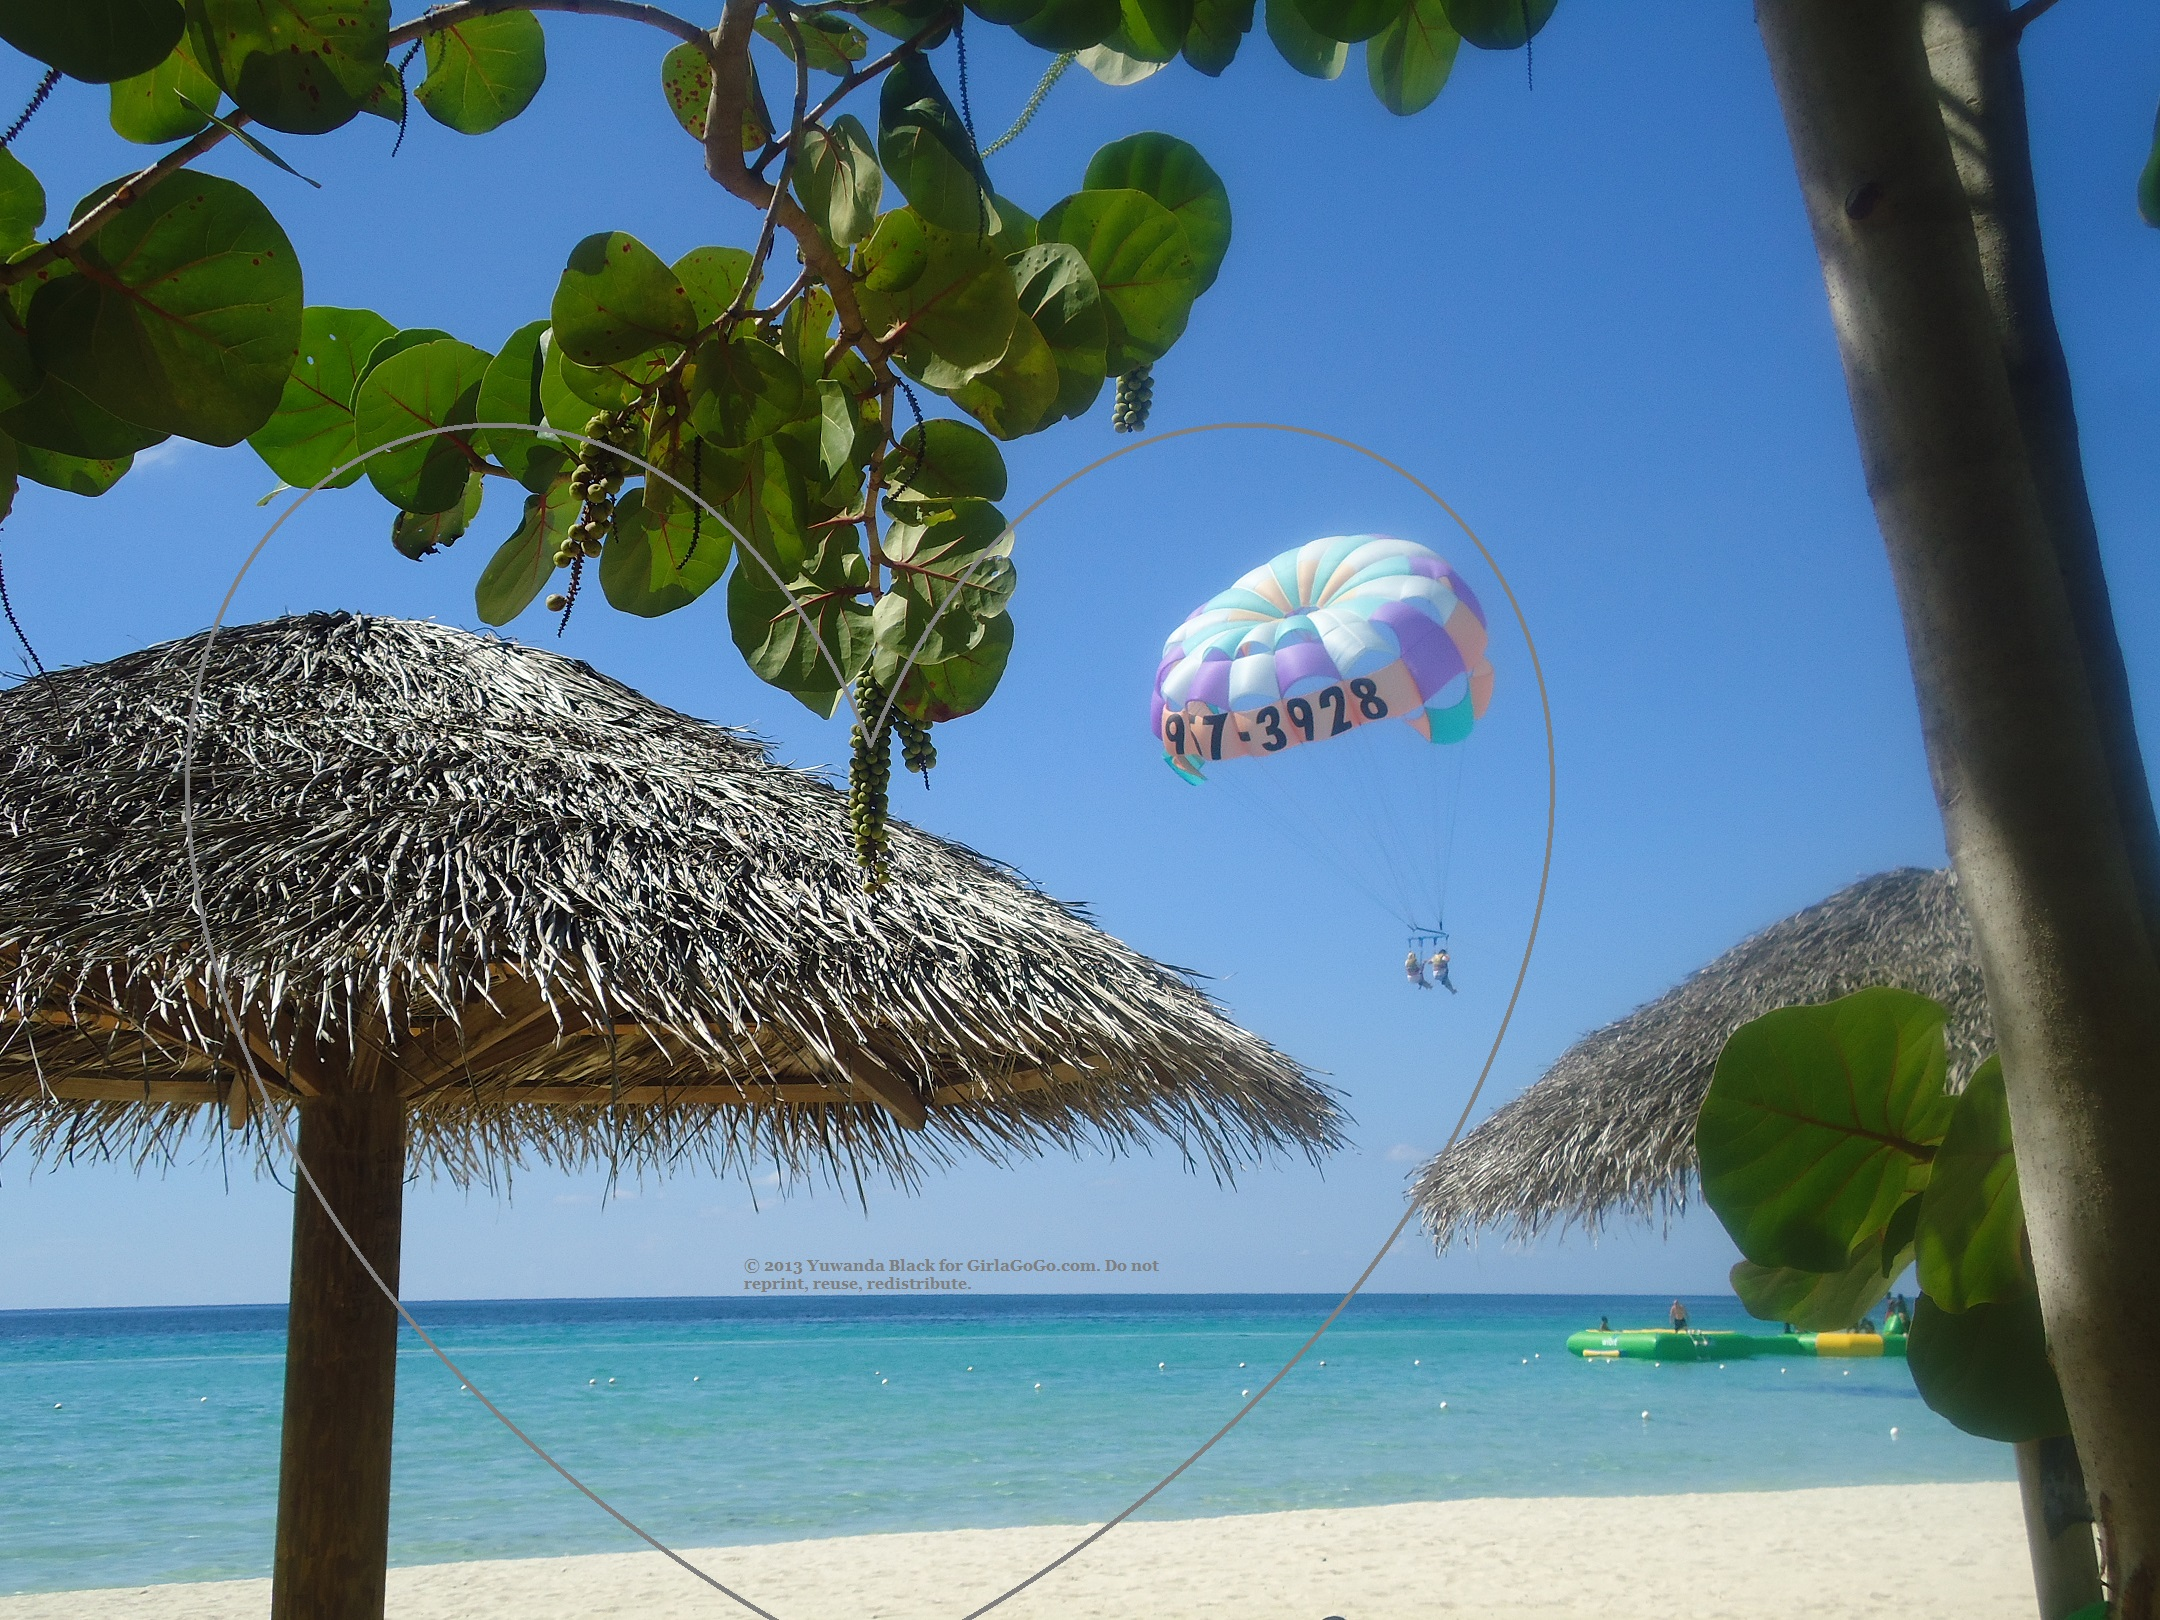 Parasailing on Negril Jamaica's 7-Mile Beach